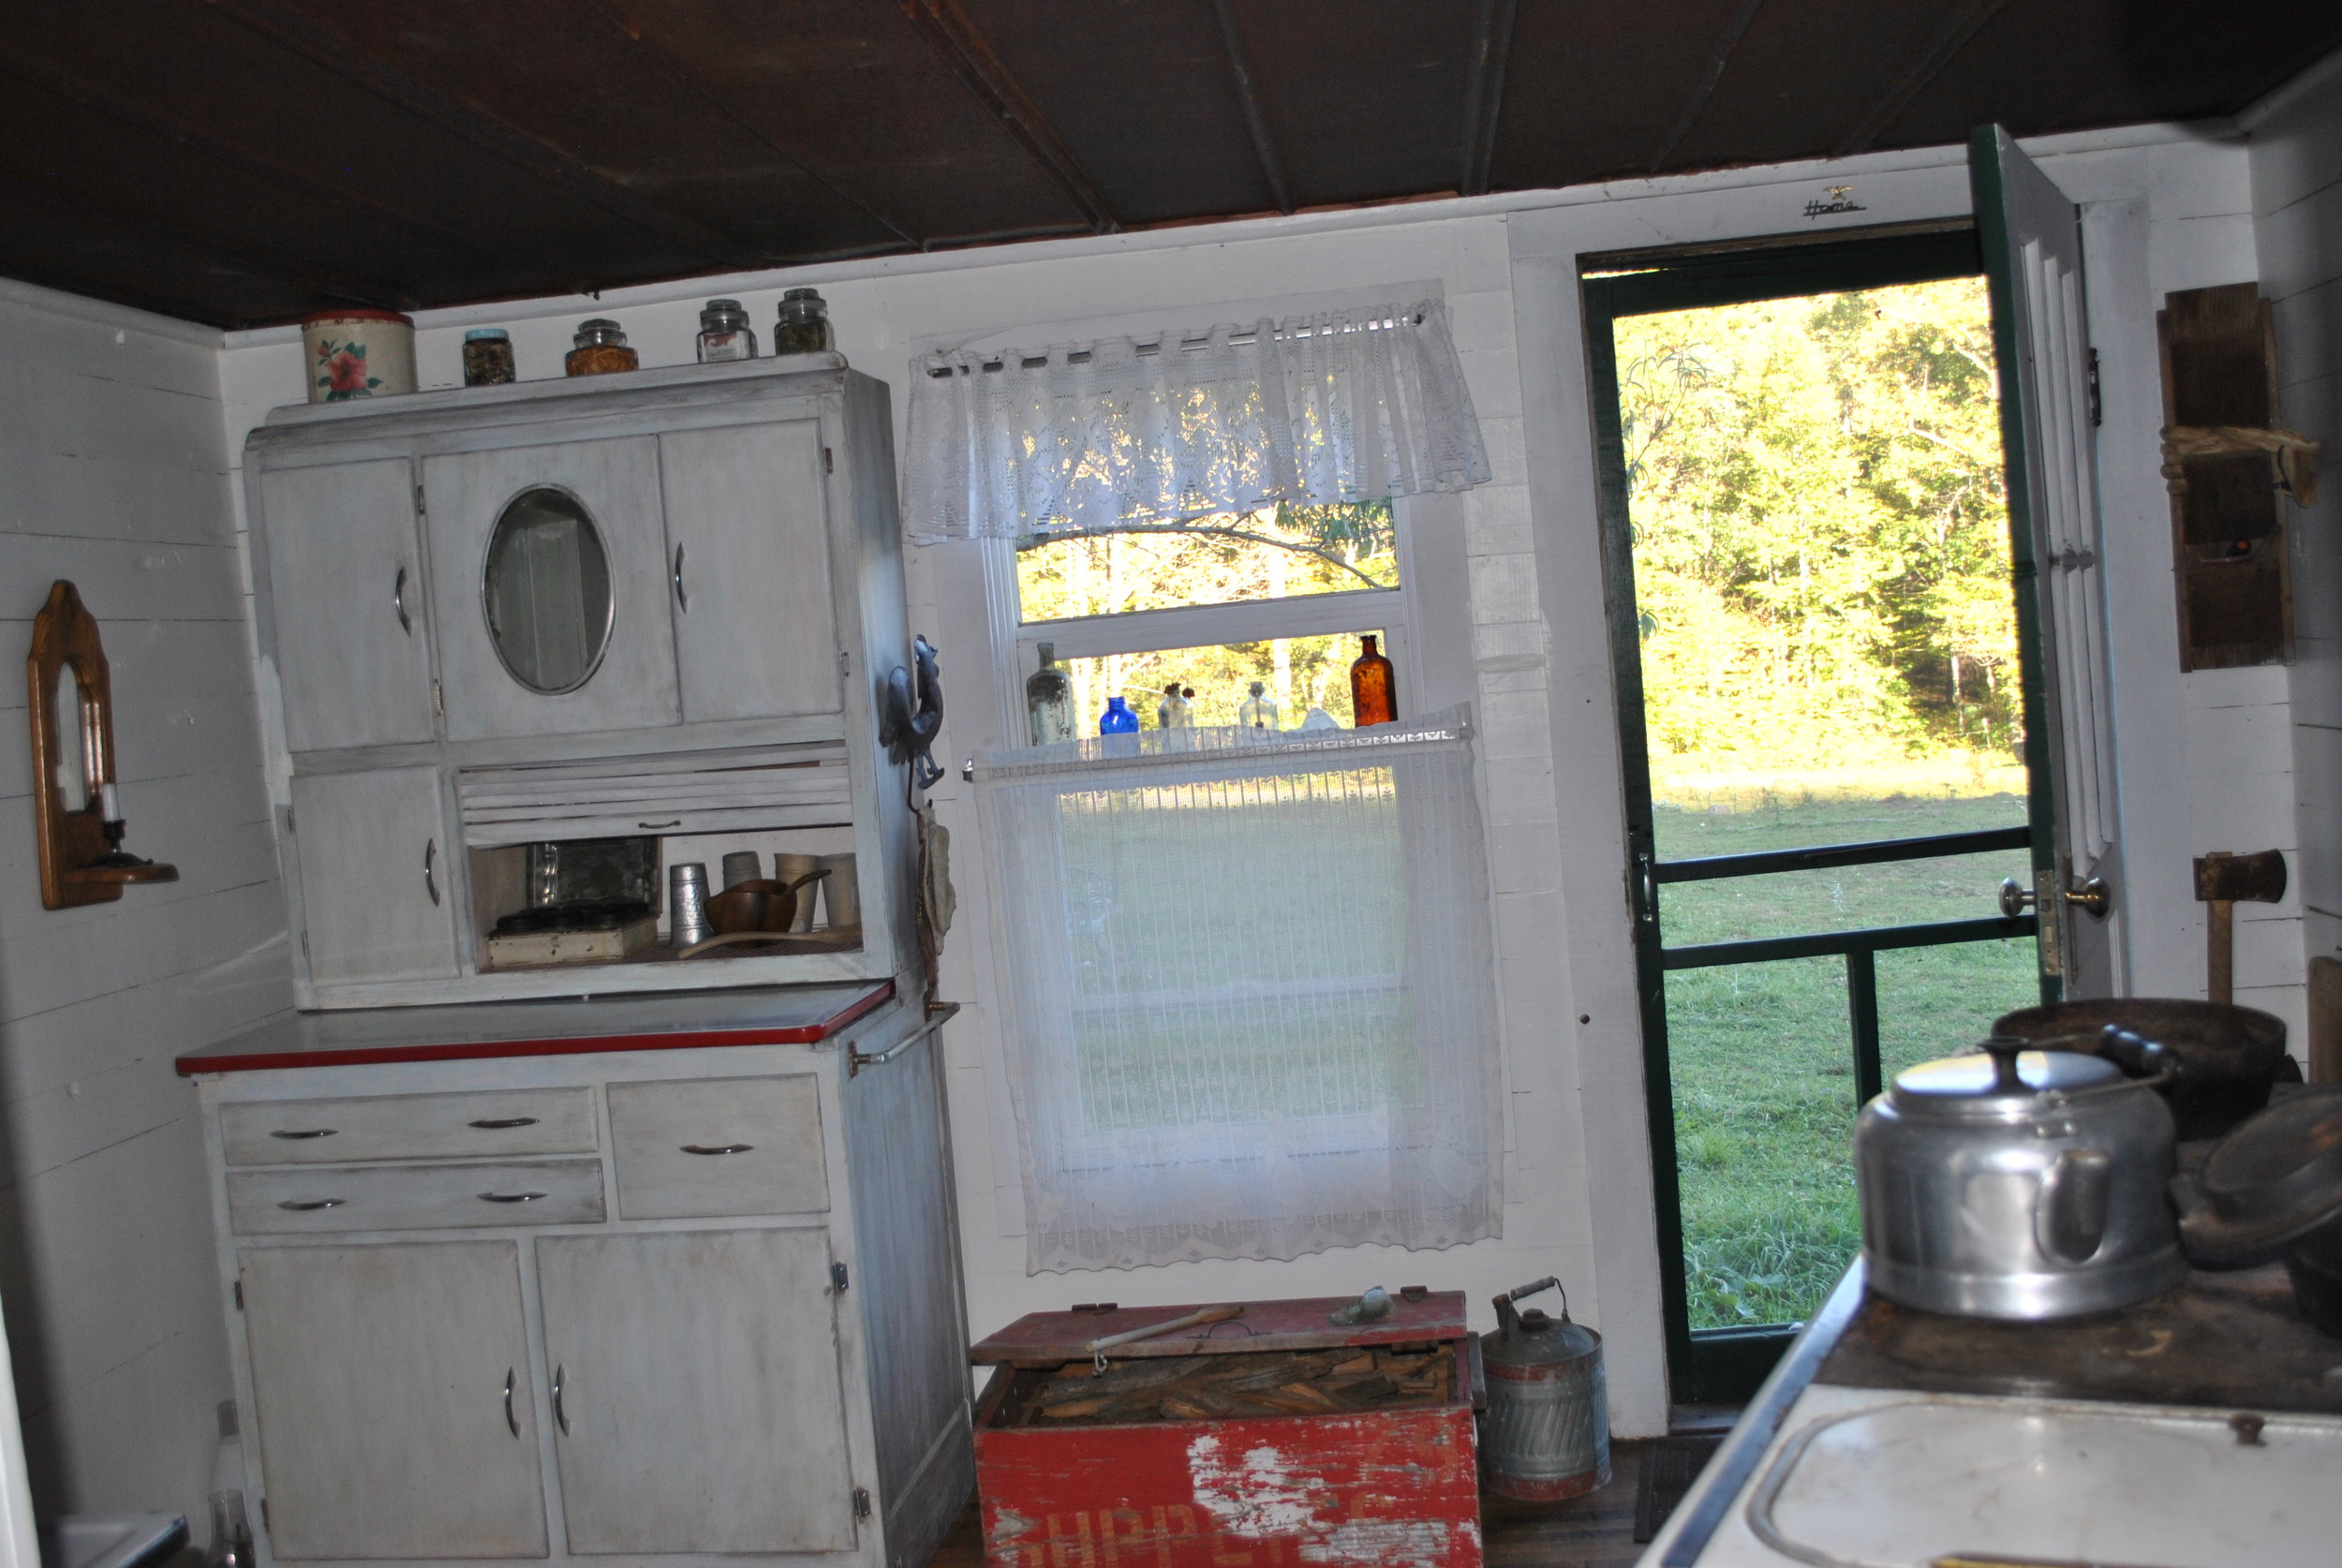 Old hossier cabinets provide storage